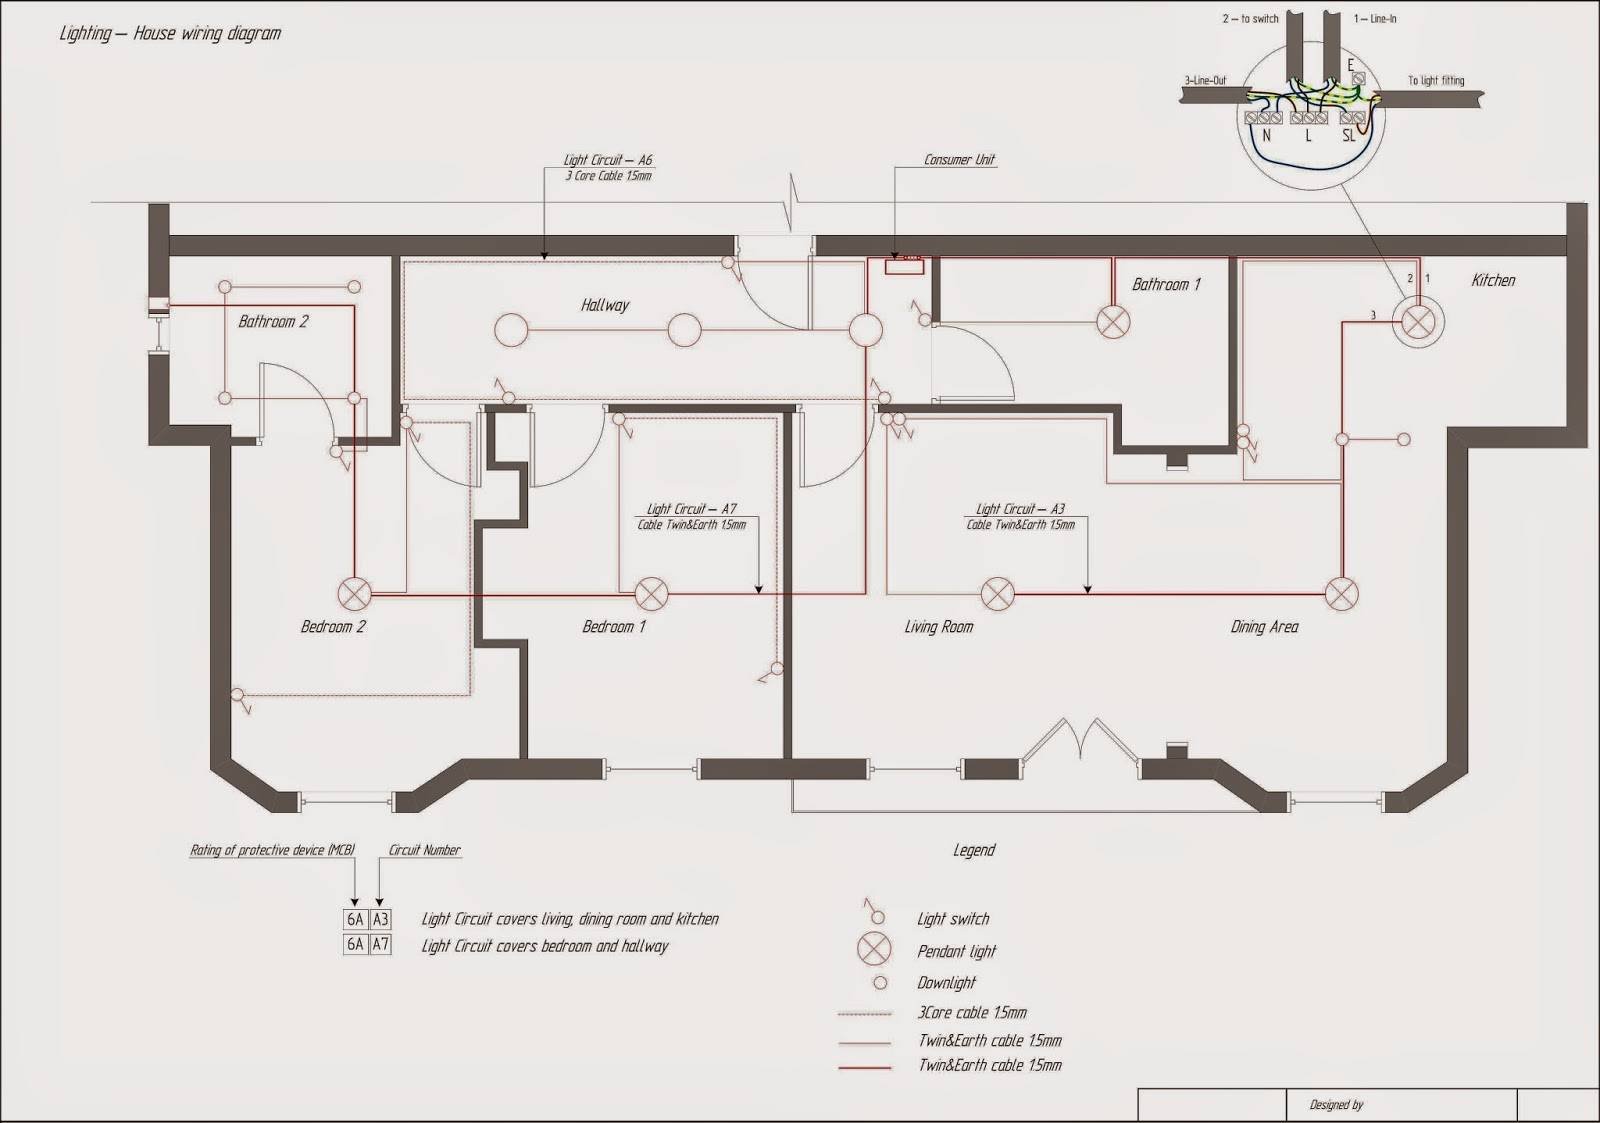 Building Wiring Diagram 700r4 4th Gear Lockup House Owner And Manual